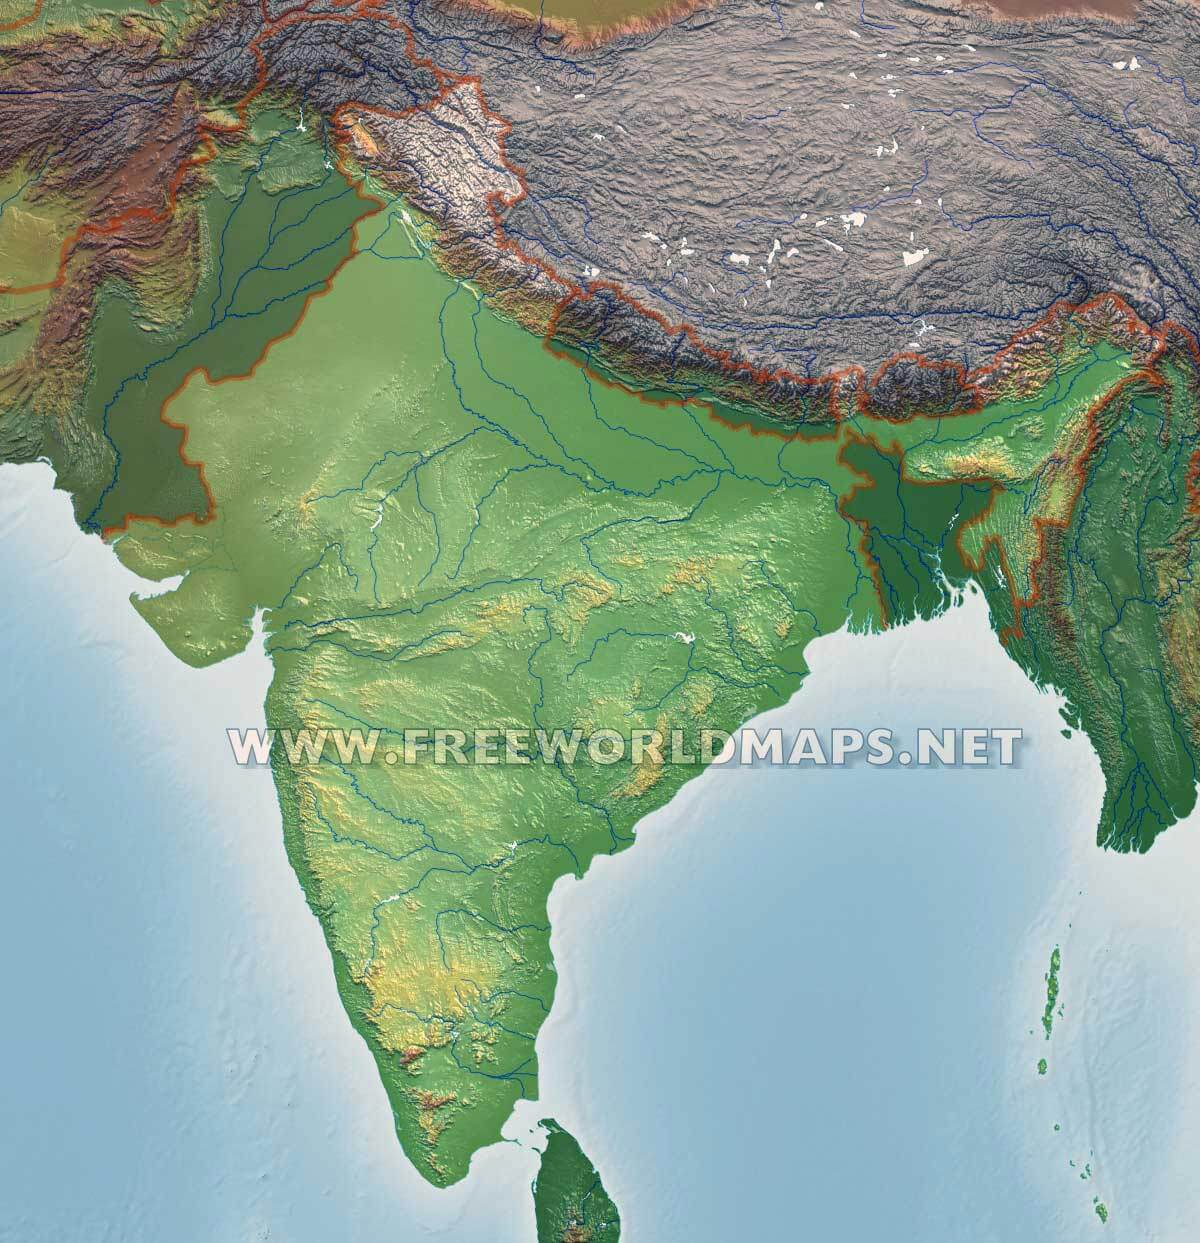 India Physical Map on indian political system, indian climate map, indian political structure, india geography map, india political map, indian language map, indian caste system, indian forest map, indian compass rose, indian history map, indian people map, indian tourist map, indian cities map, indian culture map, indian blank map, ancient india map, indian map outline, indian science map, indian food map, indian social structure,